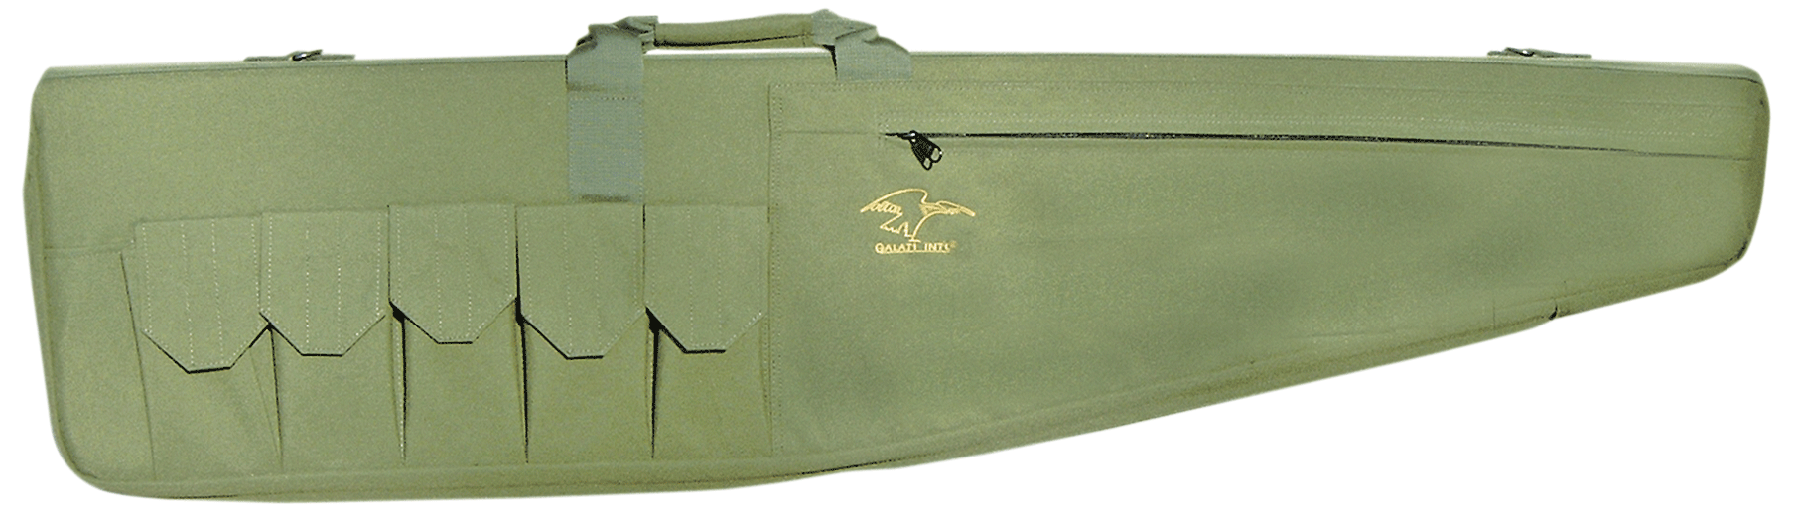 Galati Gear 4608OD XT Rifle Case 45